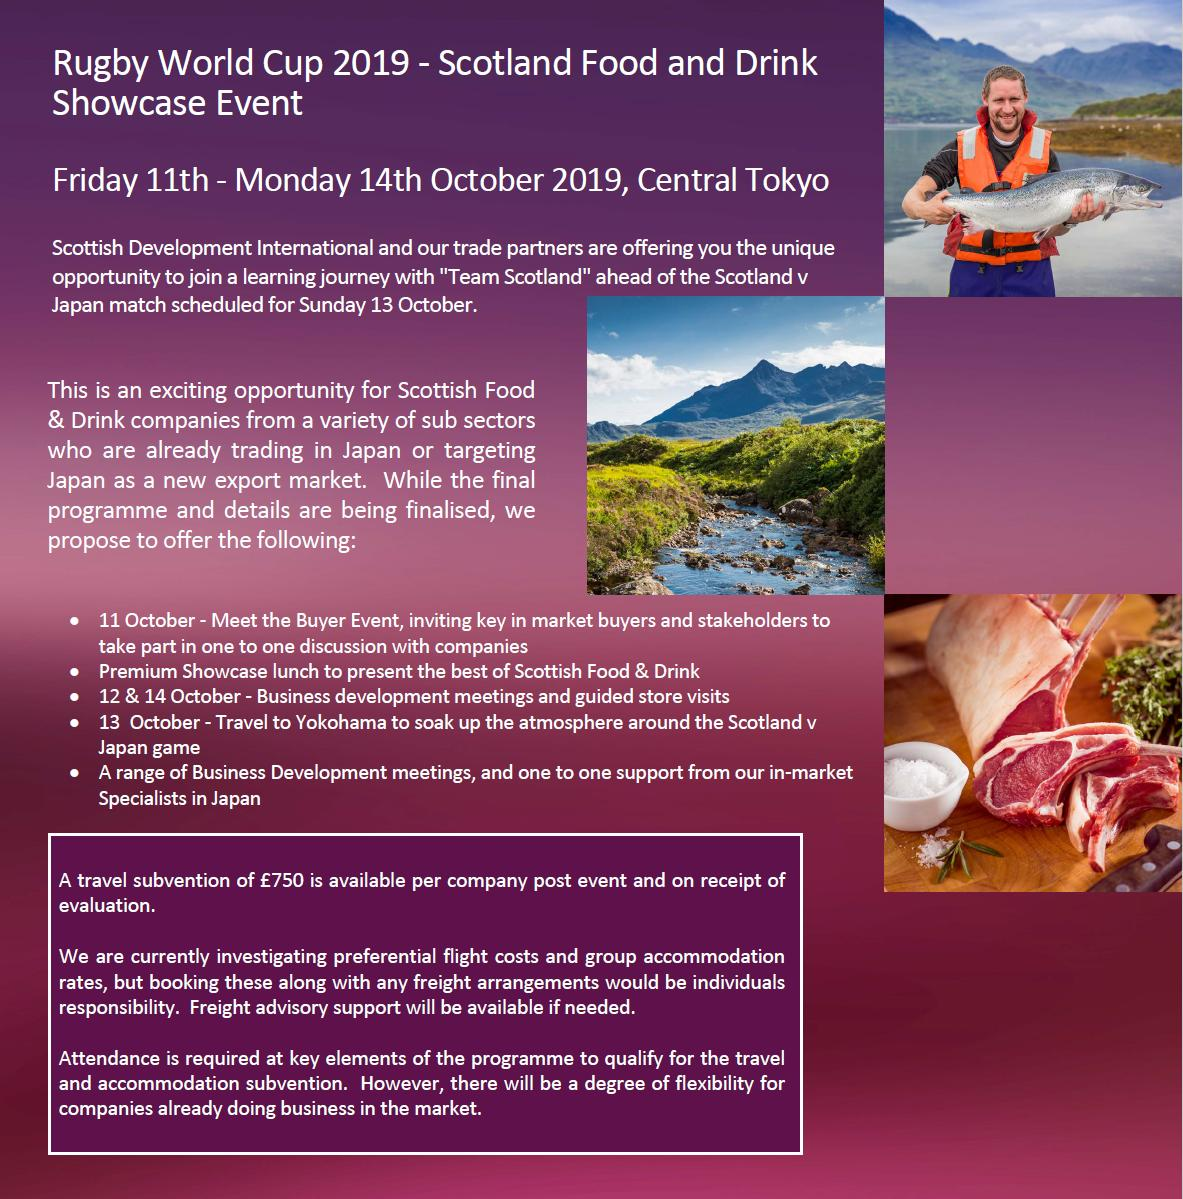 There's still time to join this fantastic showcase of Scottish food and drink in Japan during the Rugby World Cup this October! #RWC2019 #ScottishSeafood